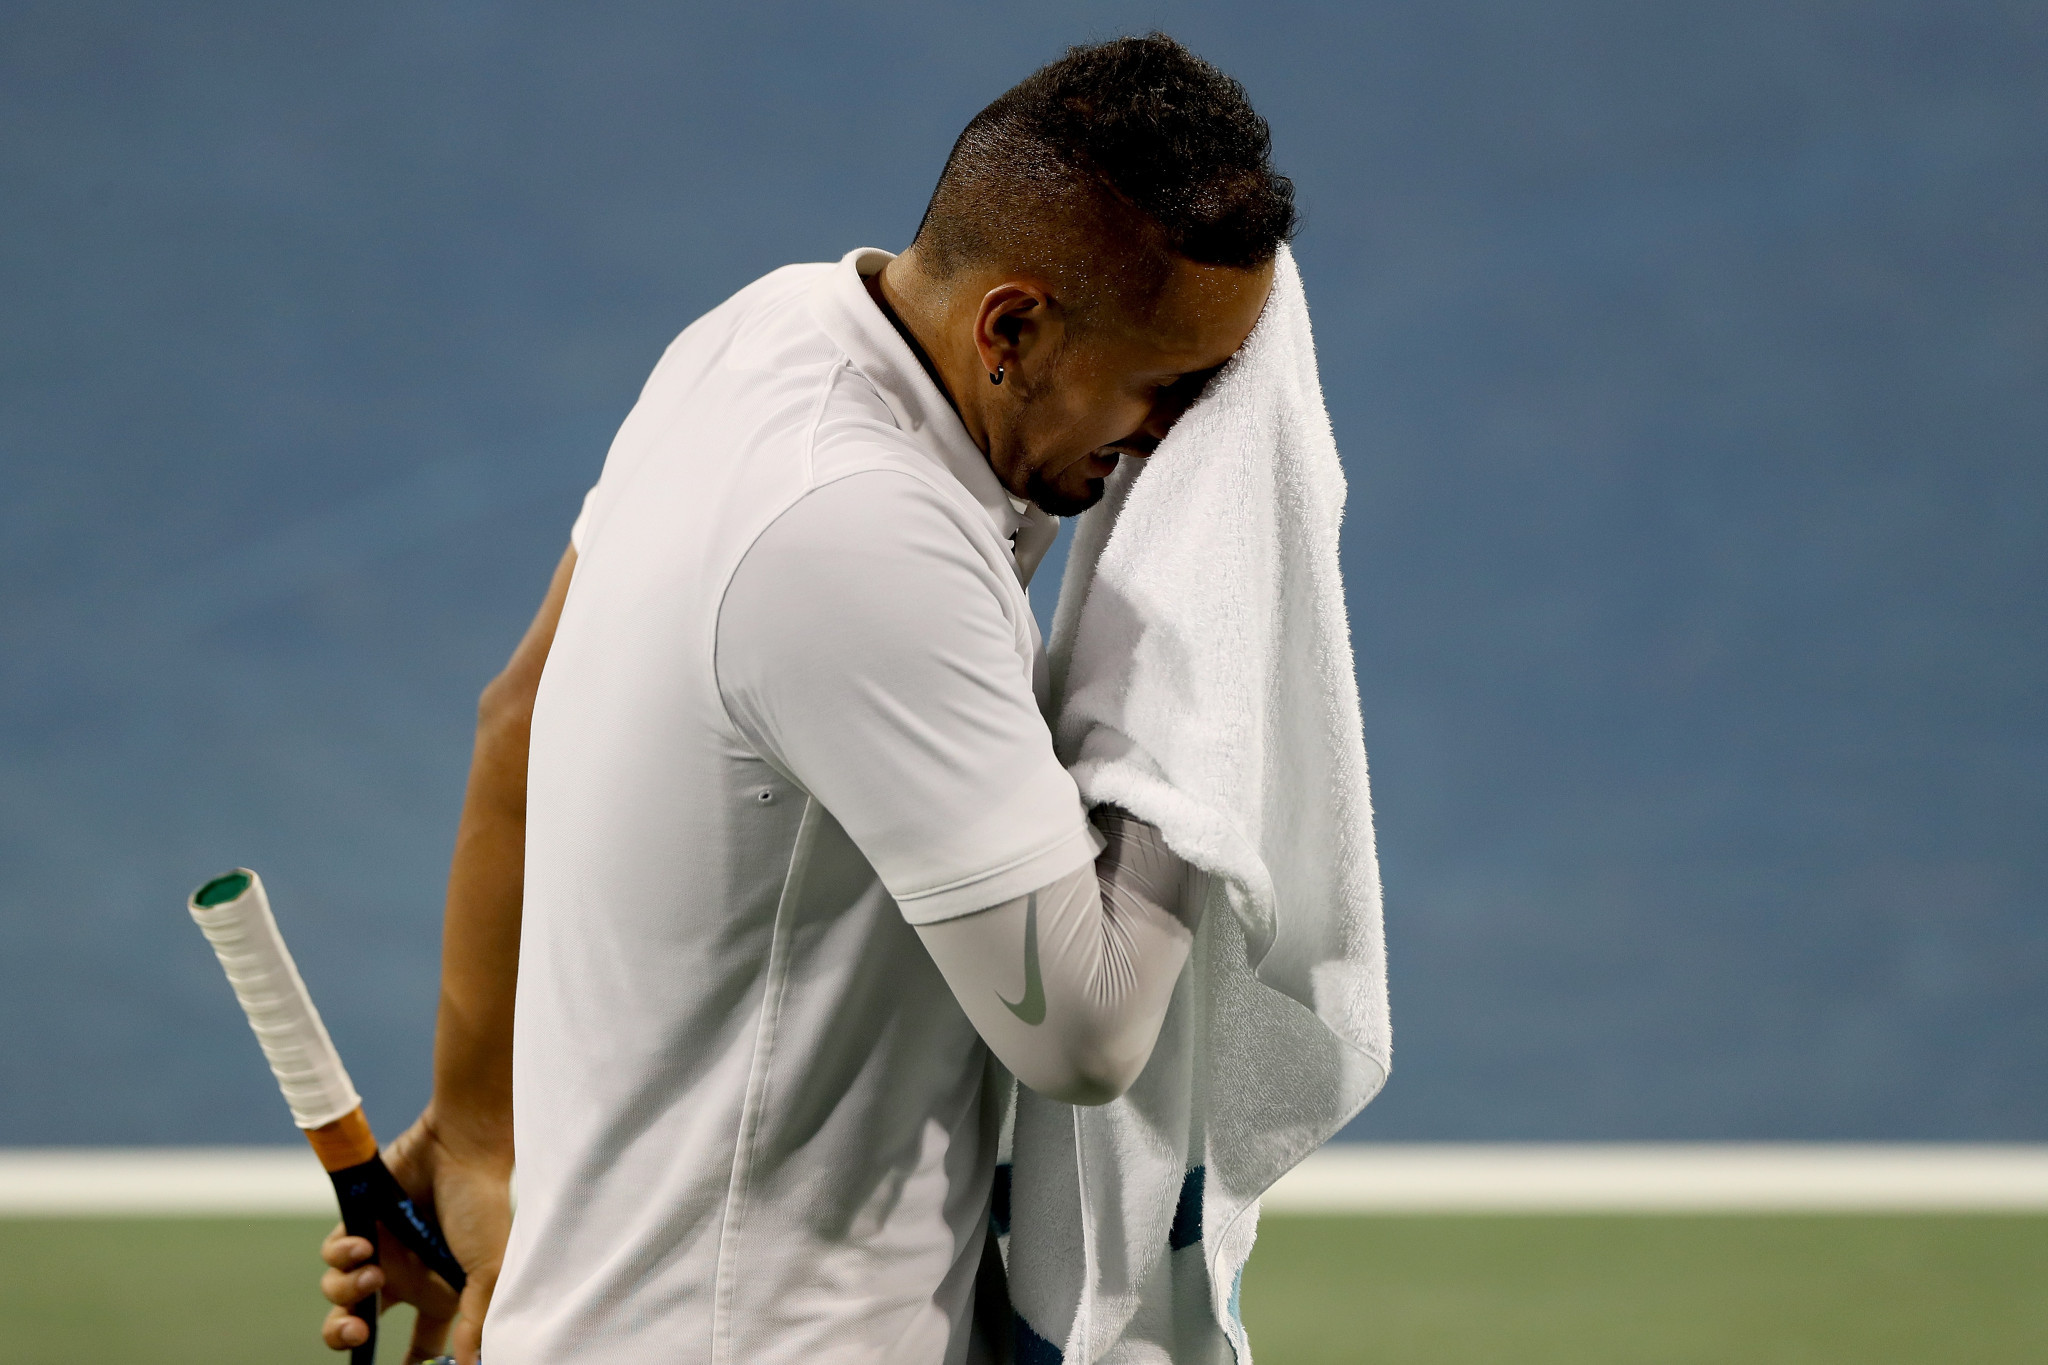 Nick Kyrgios suffered an on-court meltdown at the Cincinnati Masters, receiving a record ATP fine ©Getty Images